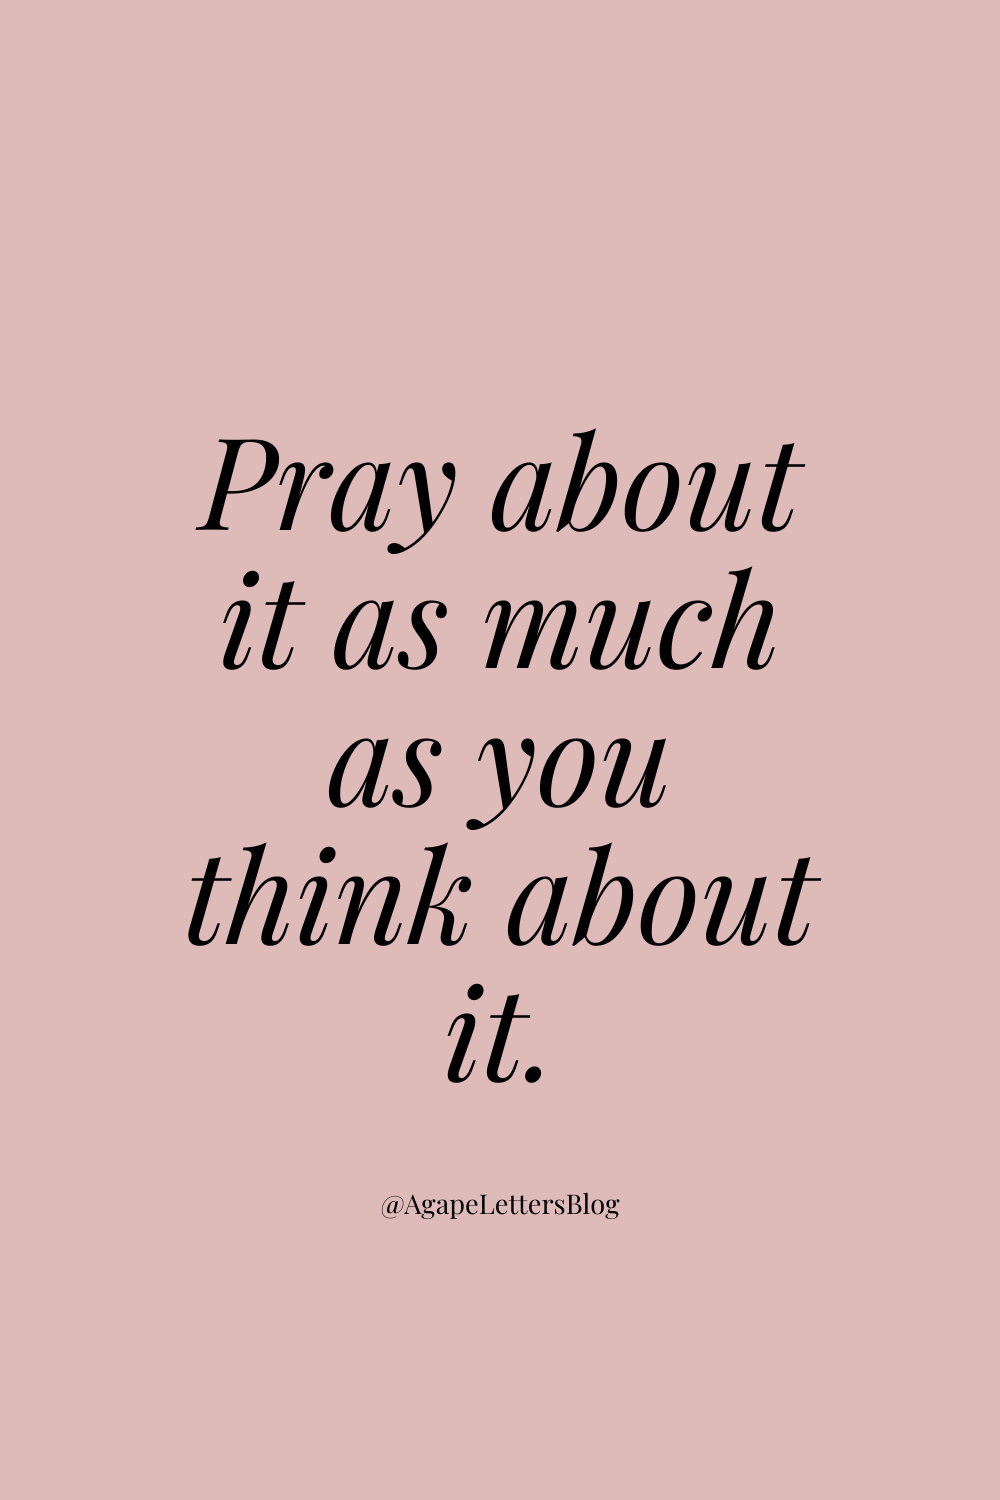 prayer quotes : 10 Faith Quotes to Help You Worry Less During Hard Times